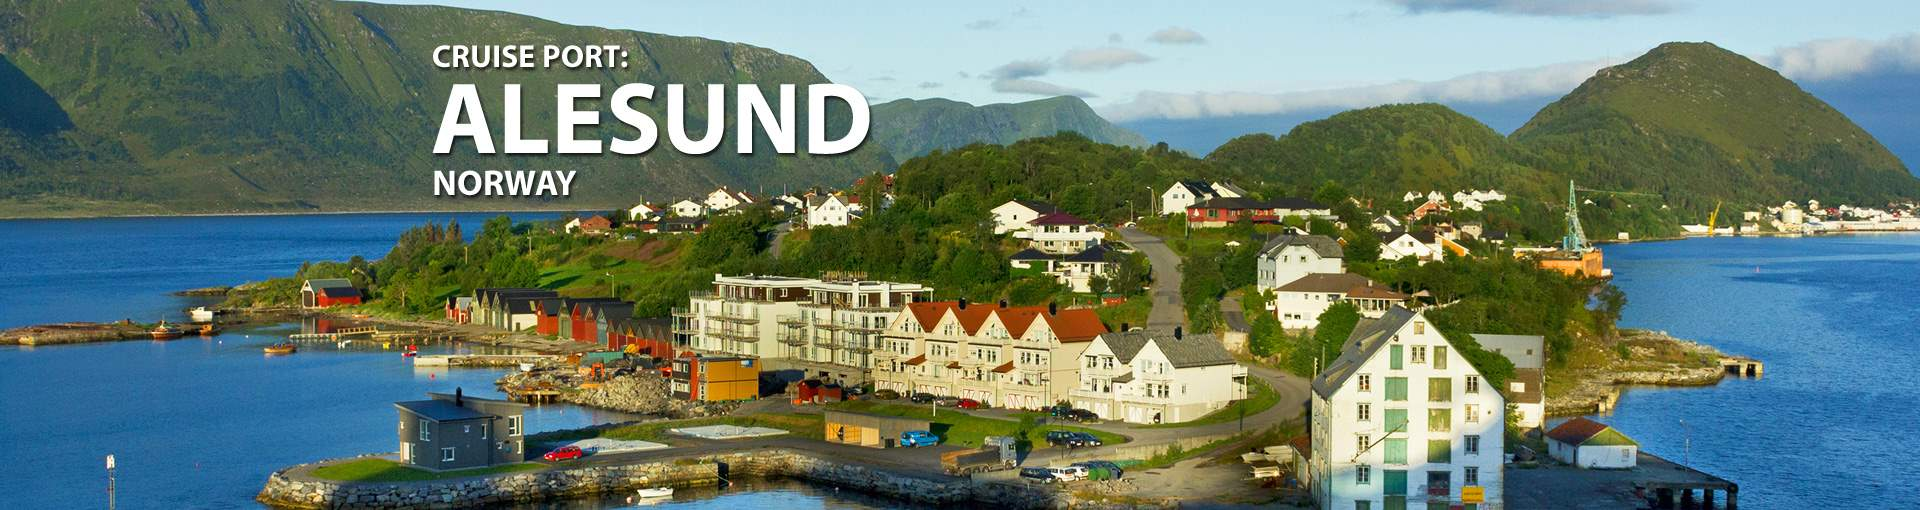 Cruise Port: Alesund, Norway